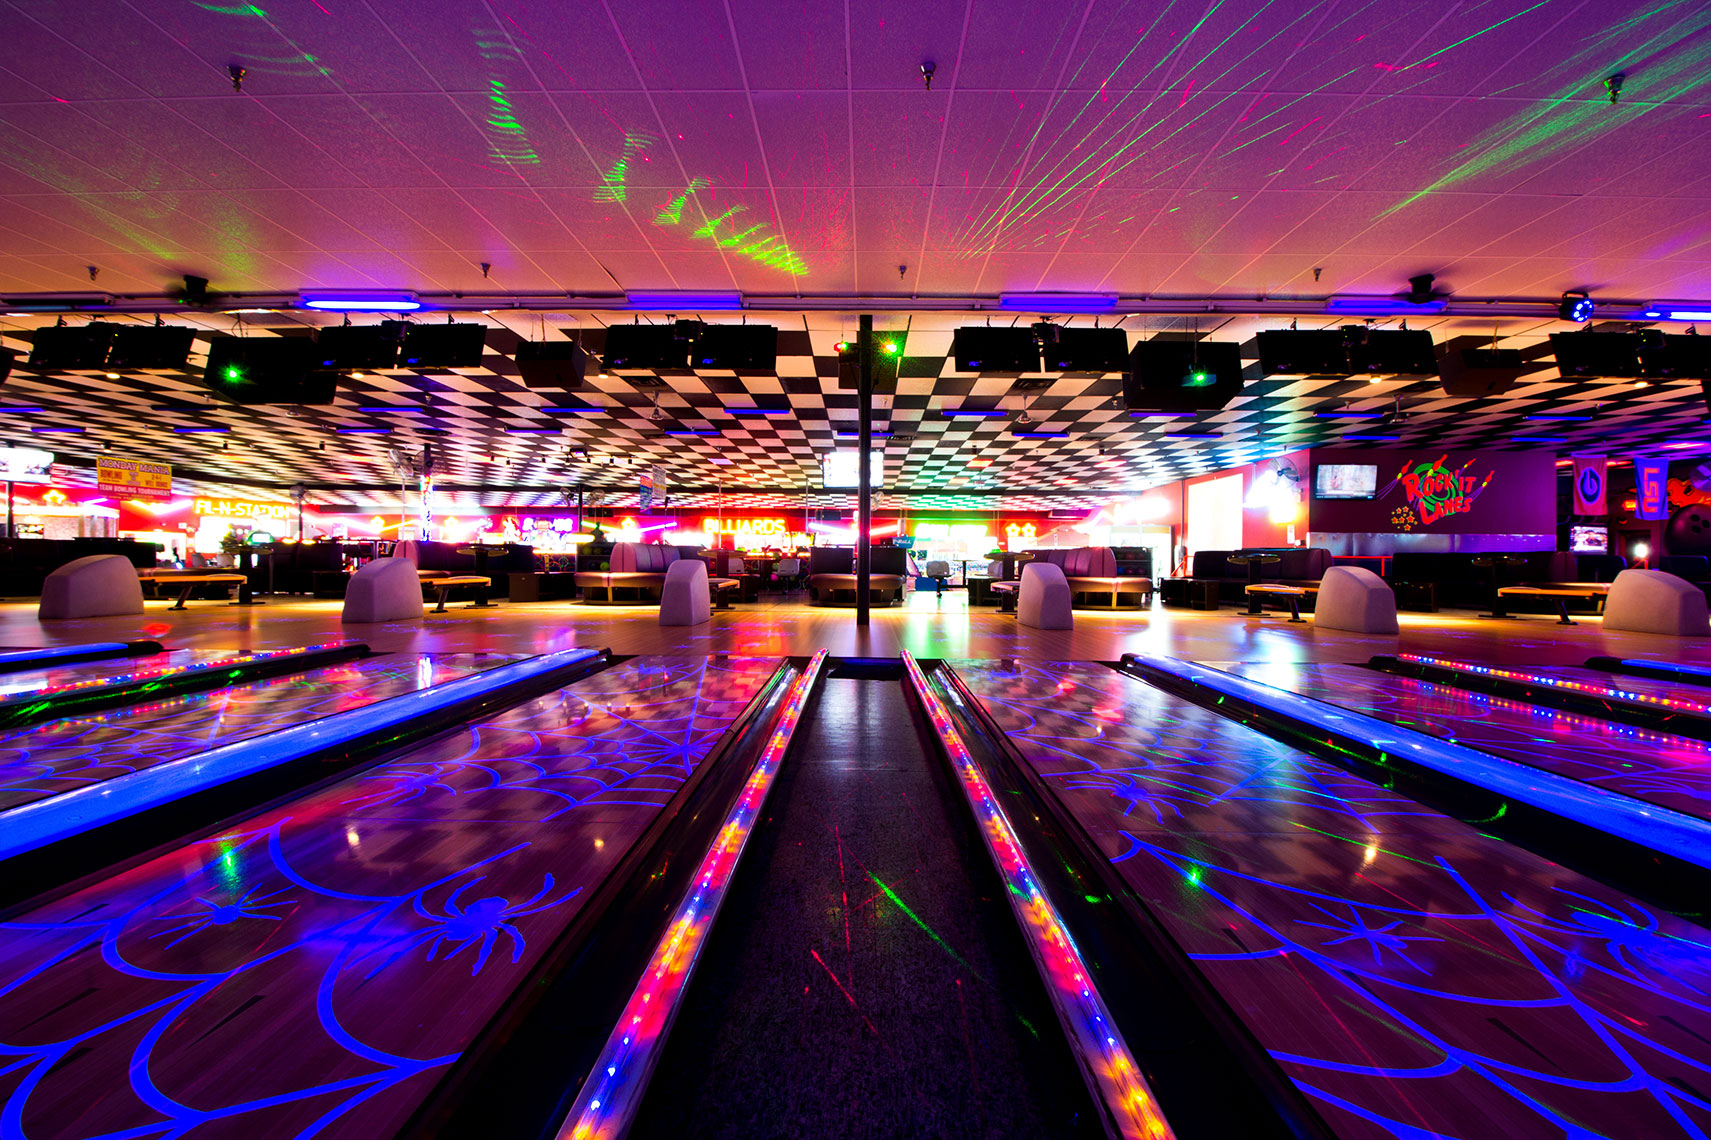 Rock 'It Lanes is a great place for bowling, games and so much more.